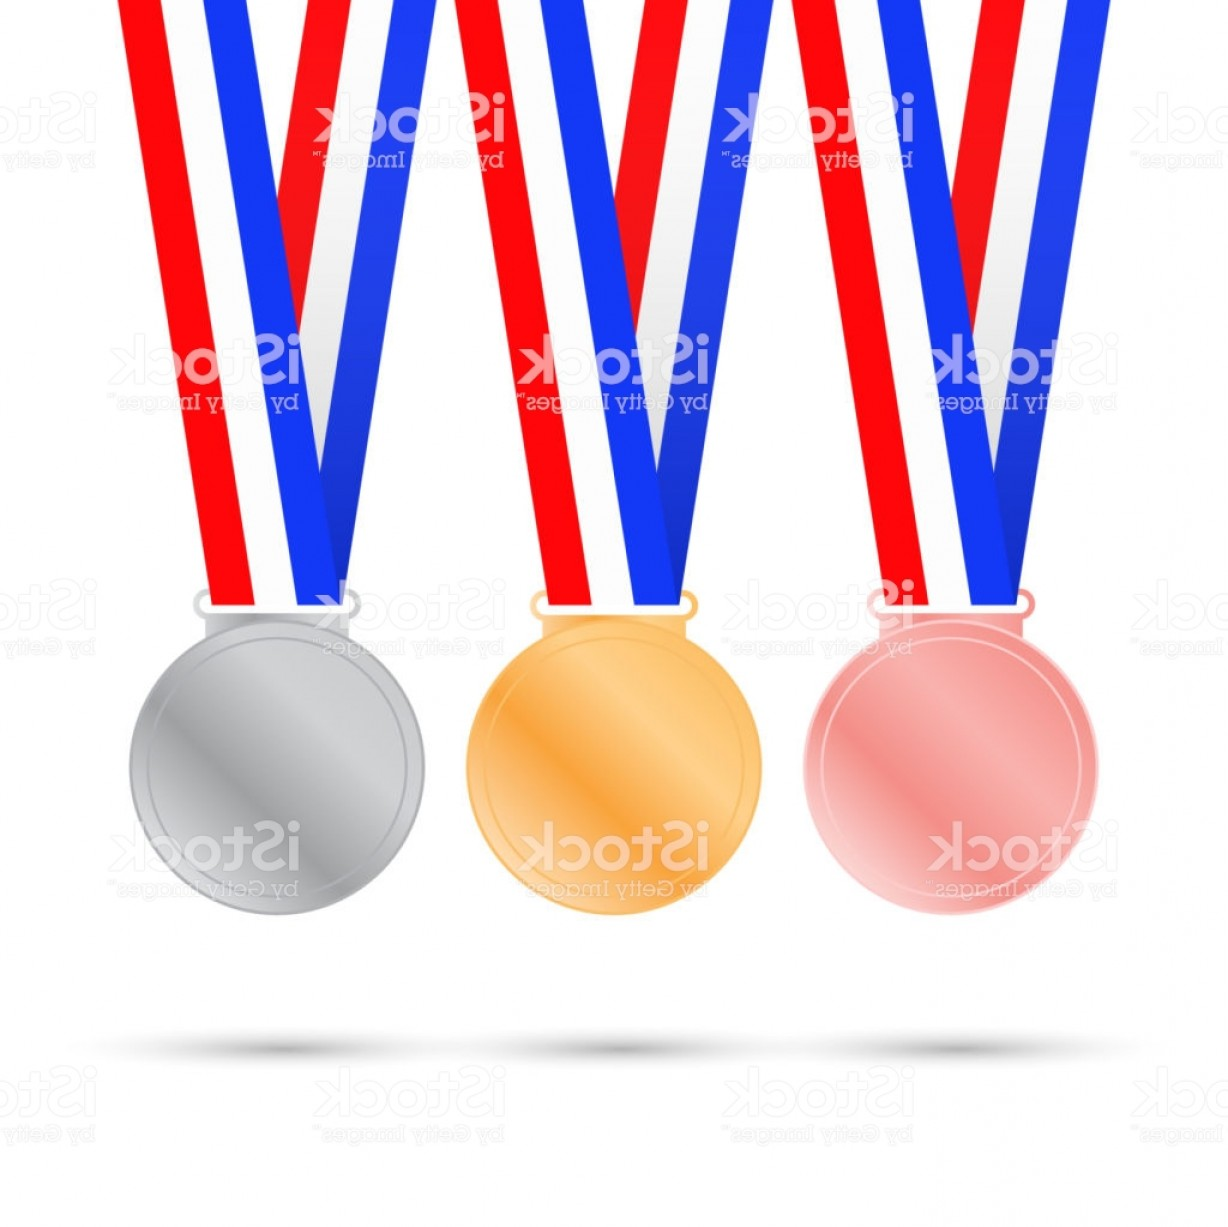 Sport Vector Art Games: Three Medals On White Background For Sport Games Vector Illustration Gm